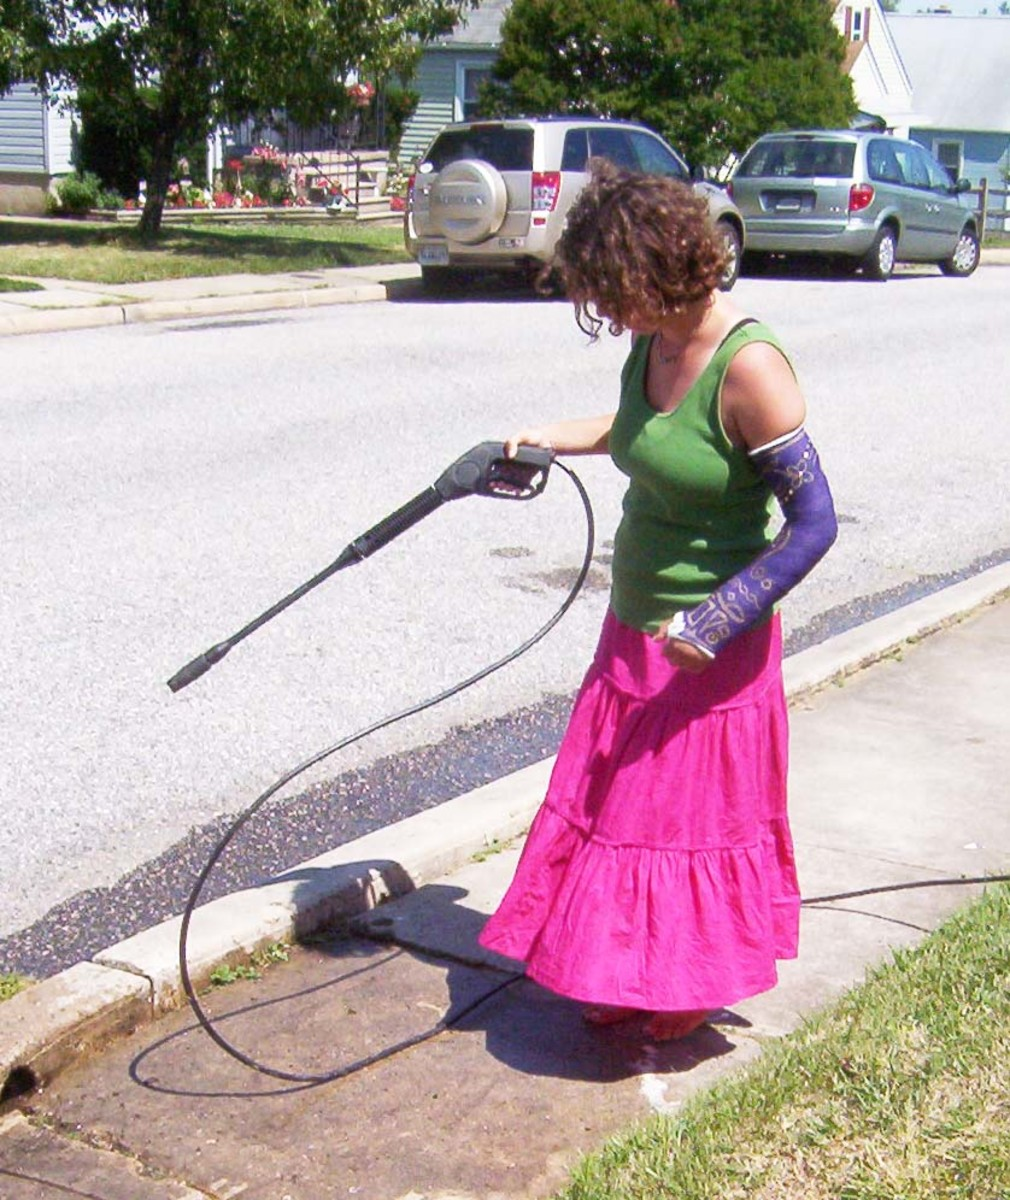 If a young lady with a broken arm can power wash the sidewalk, so can you. More powerful pressure washers need to be handled with both hands.